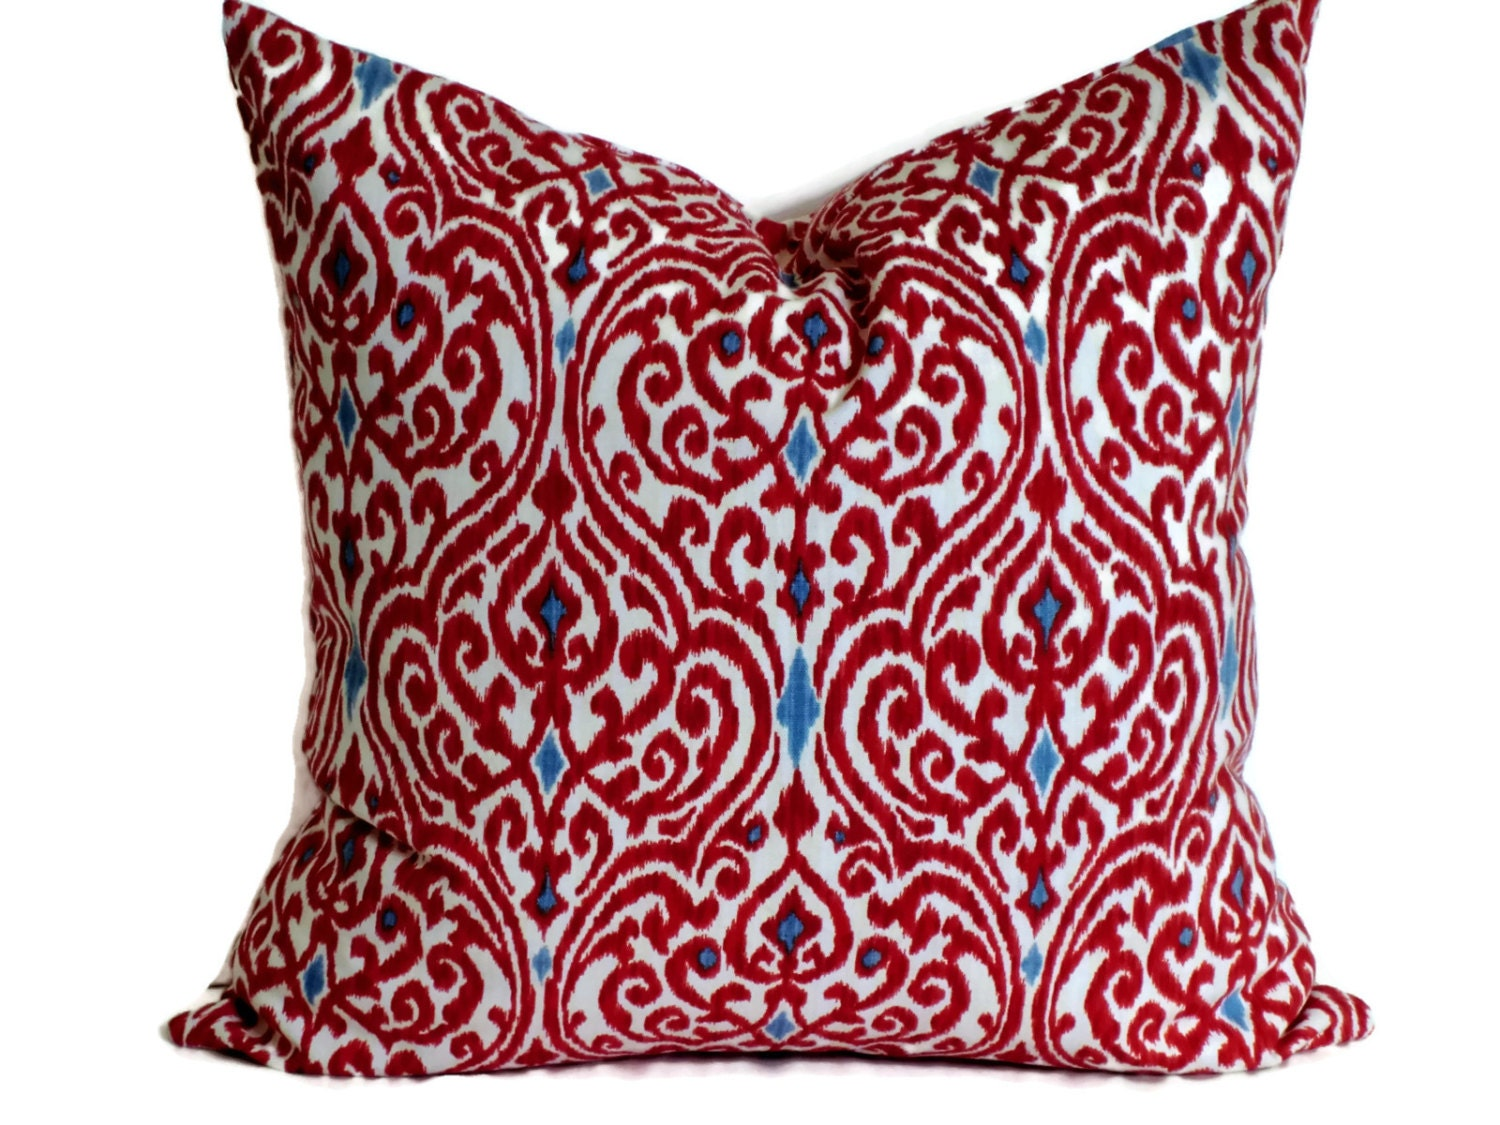 Waverly Ikat Pillow Cover Decorative Pillow by MissEvaDivaDesigns